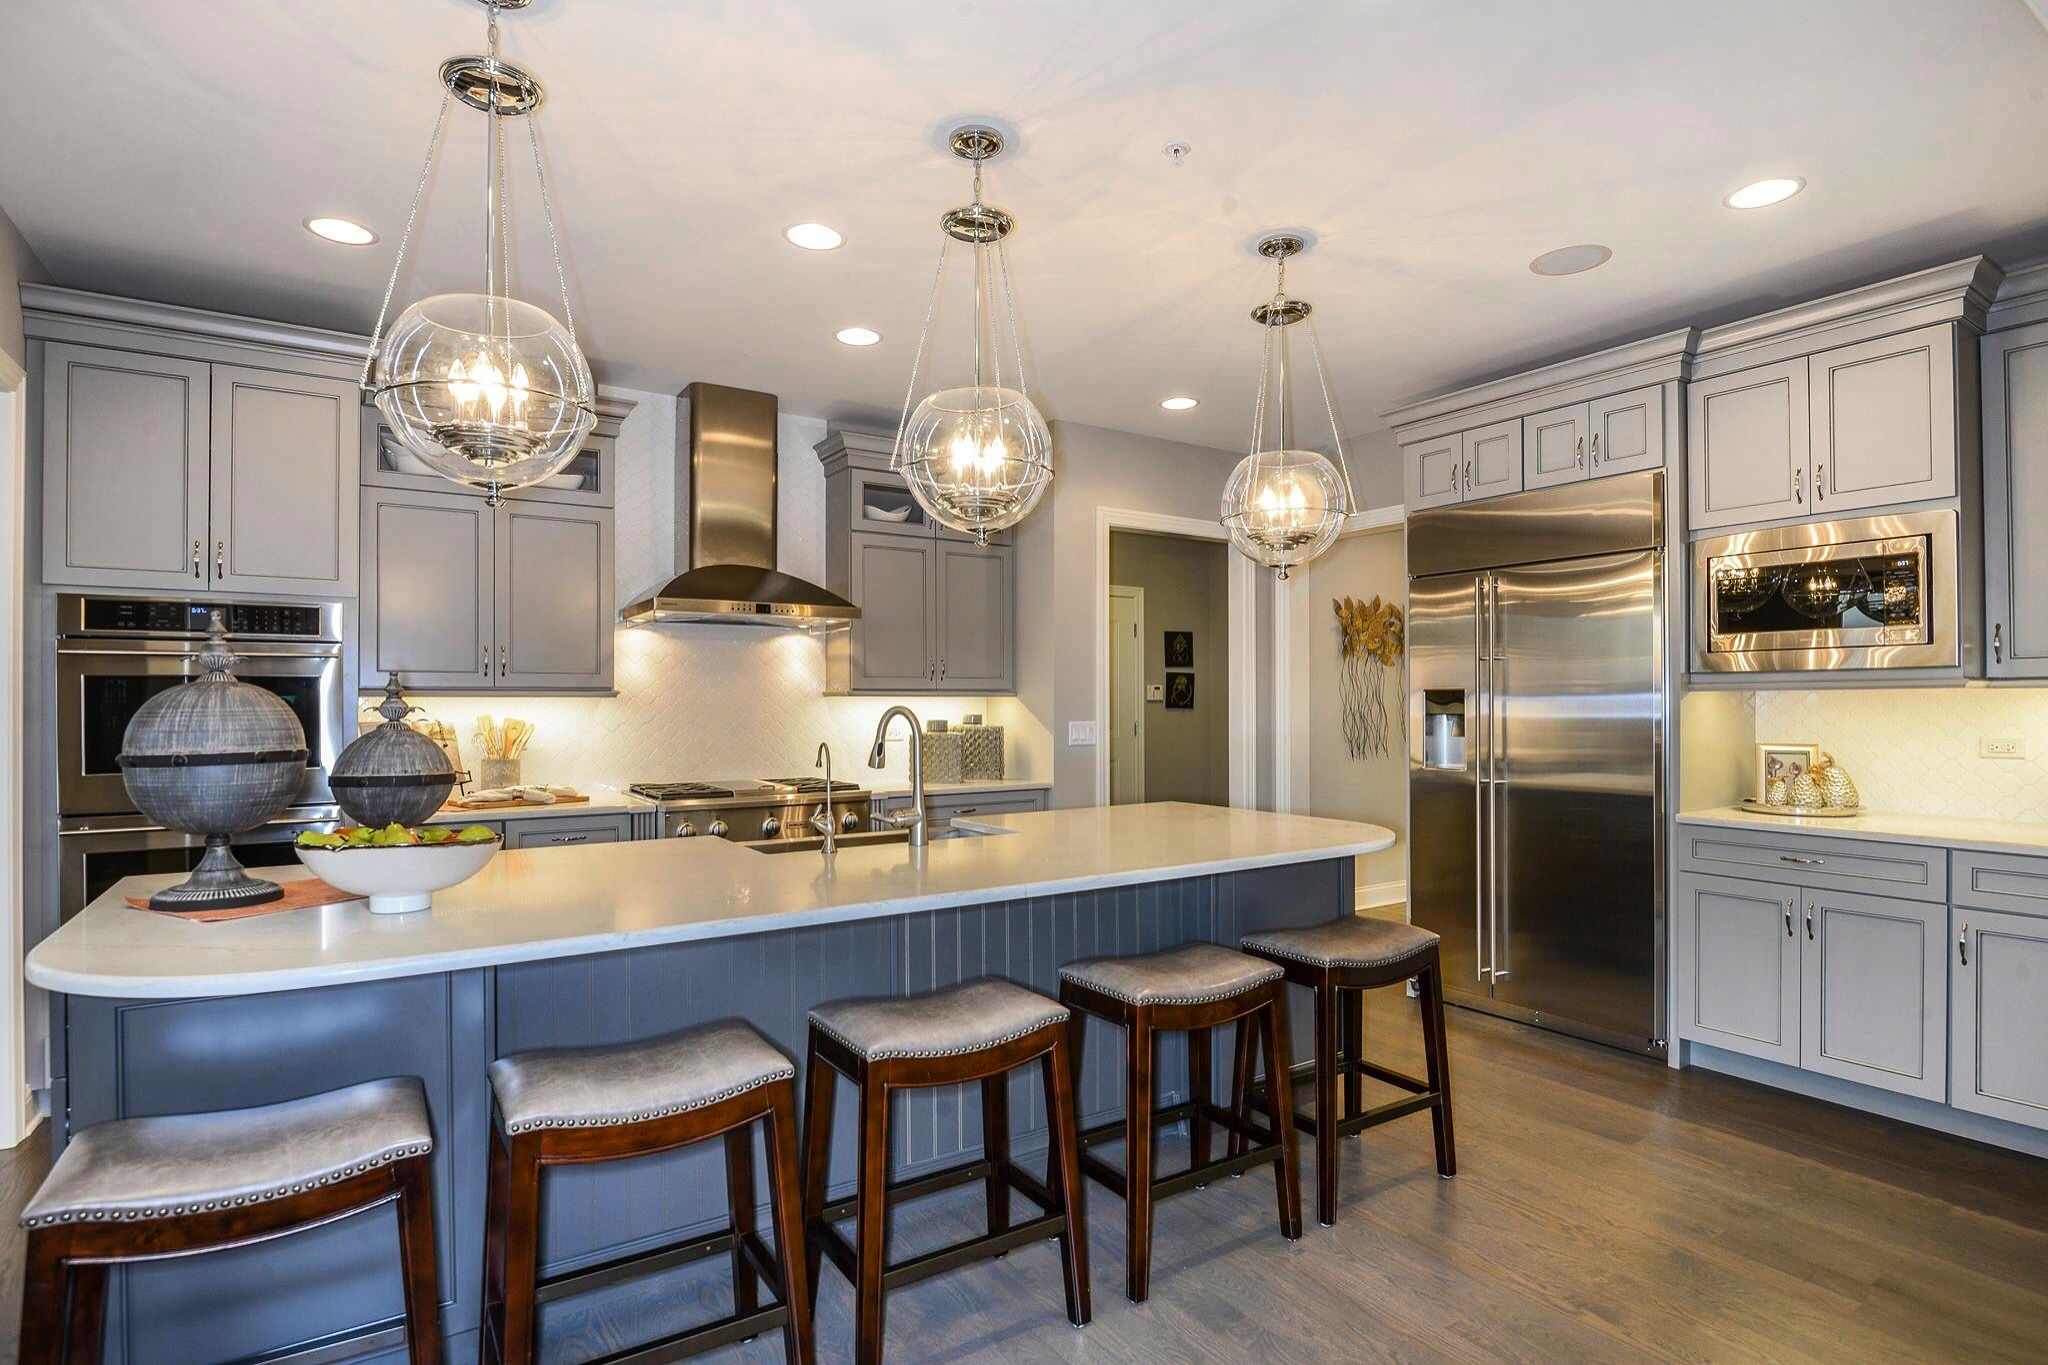 newhome design dreamhome luxuryhomes elegant living instahome